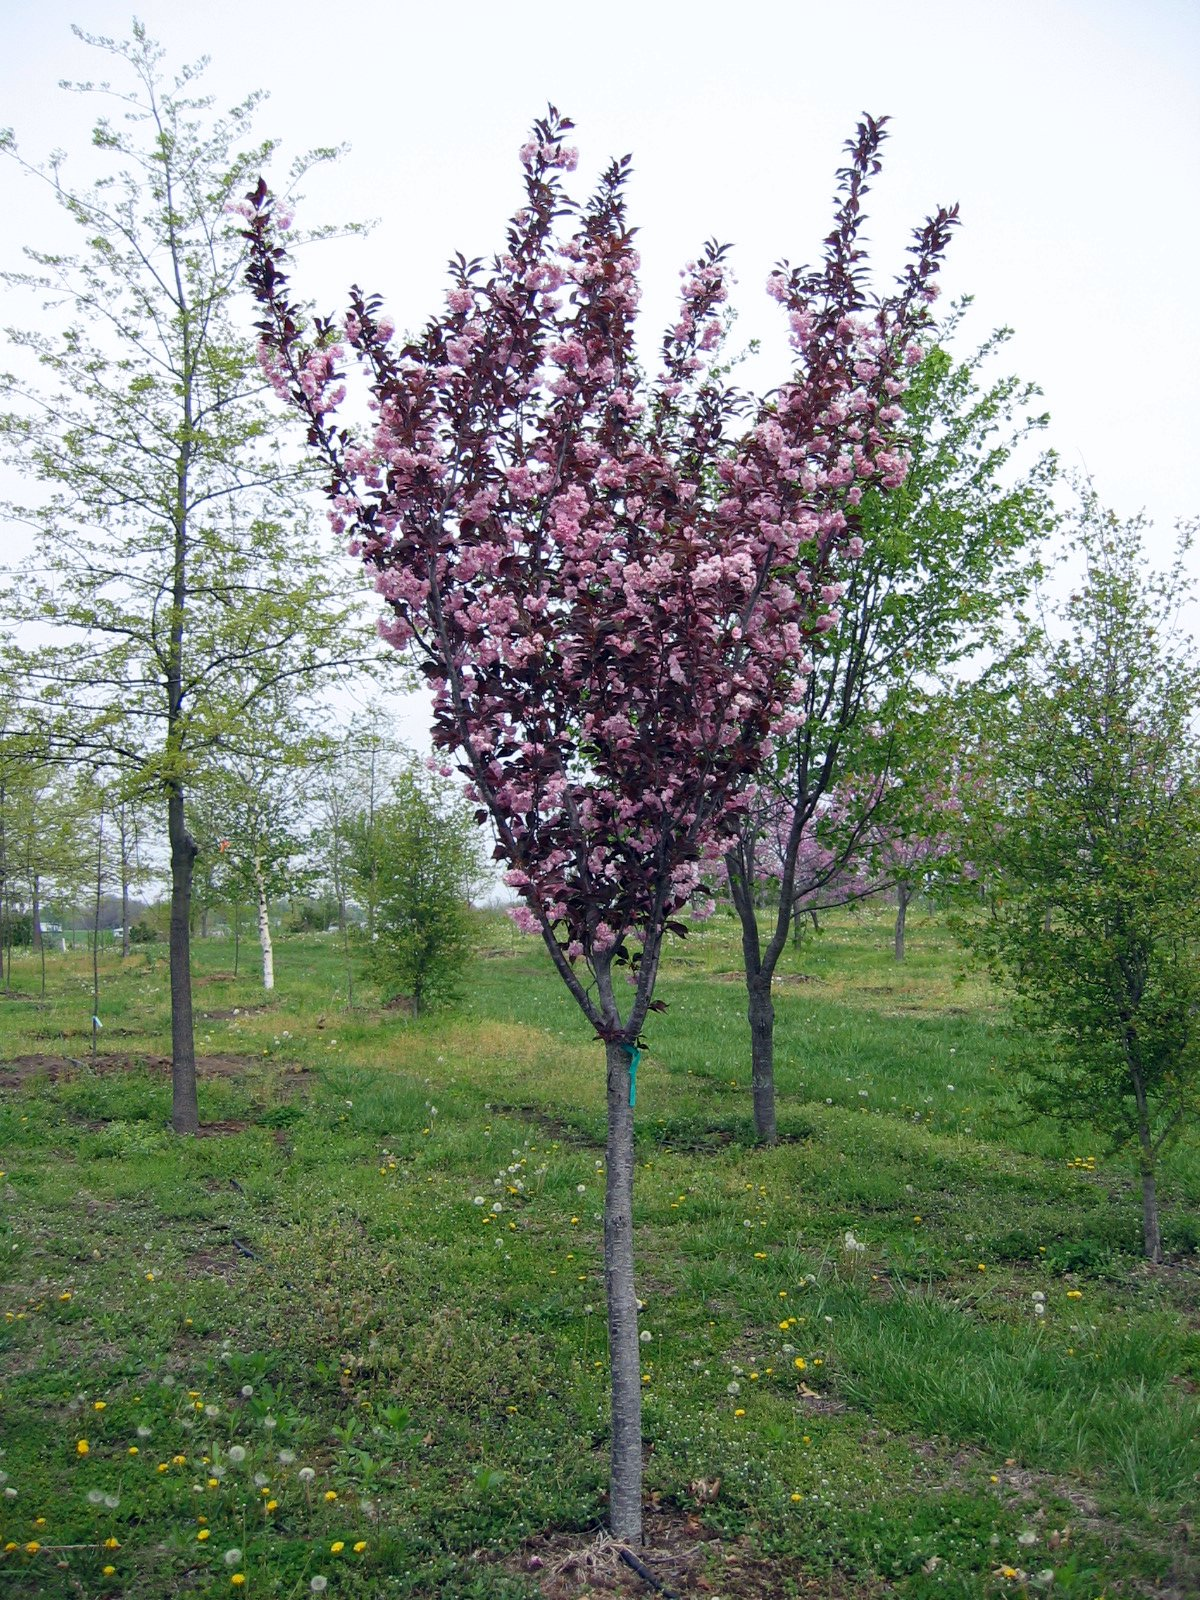 Crabapple Small flowering trees